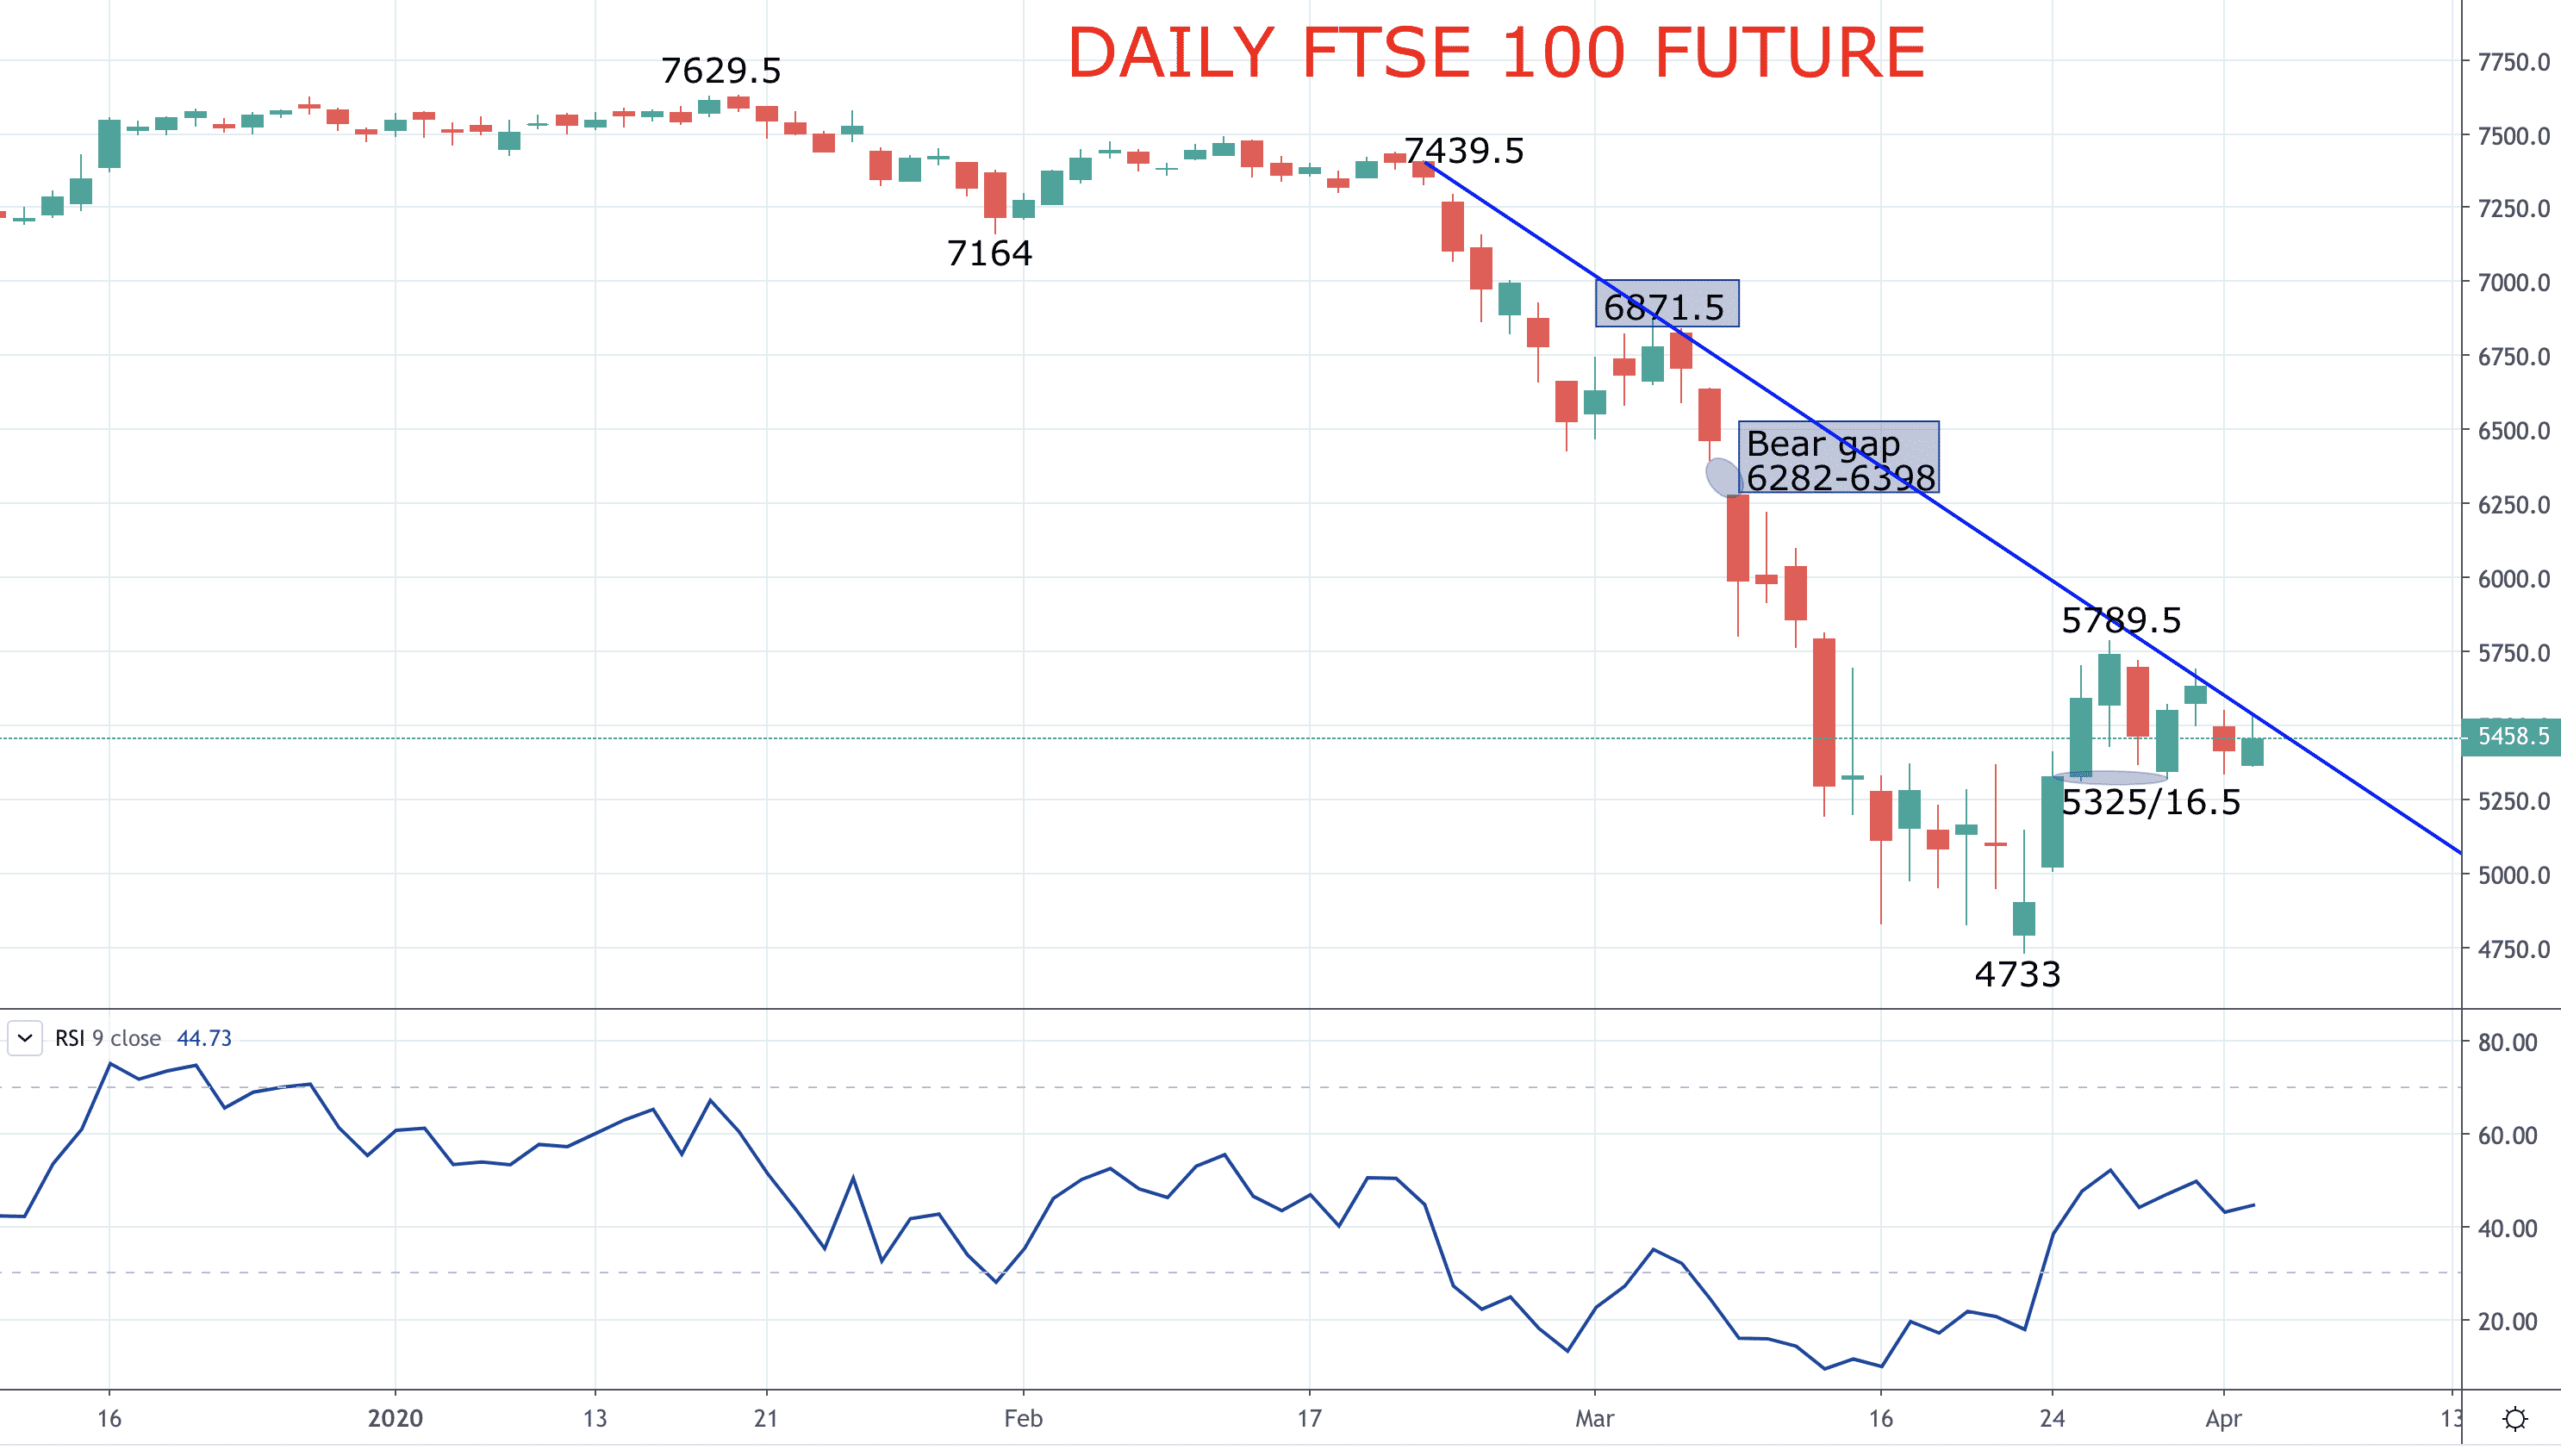 Stock indices stay vulnerable to further losses (FTSE forecast) Image